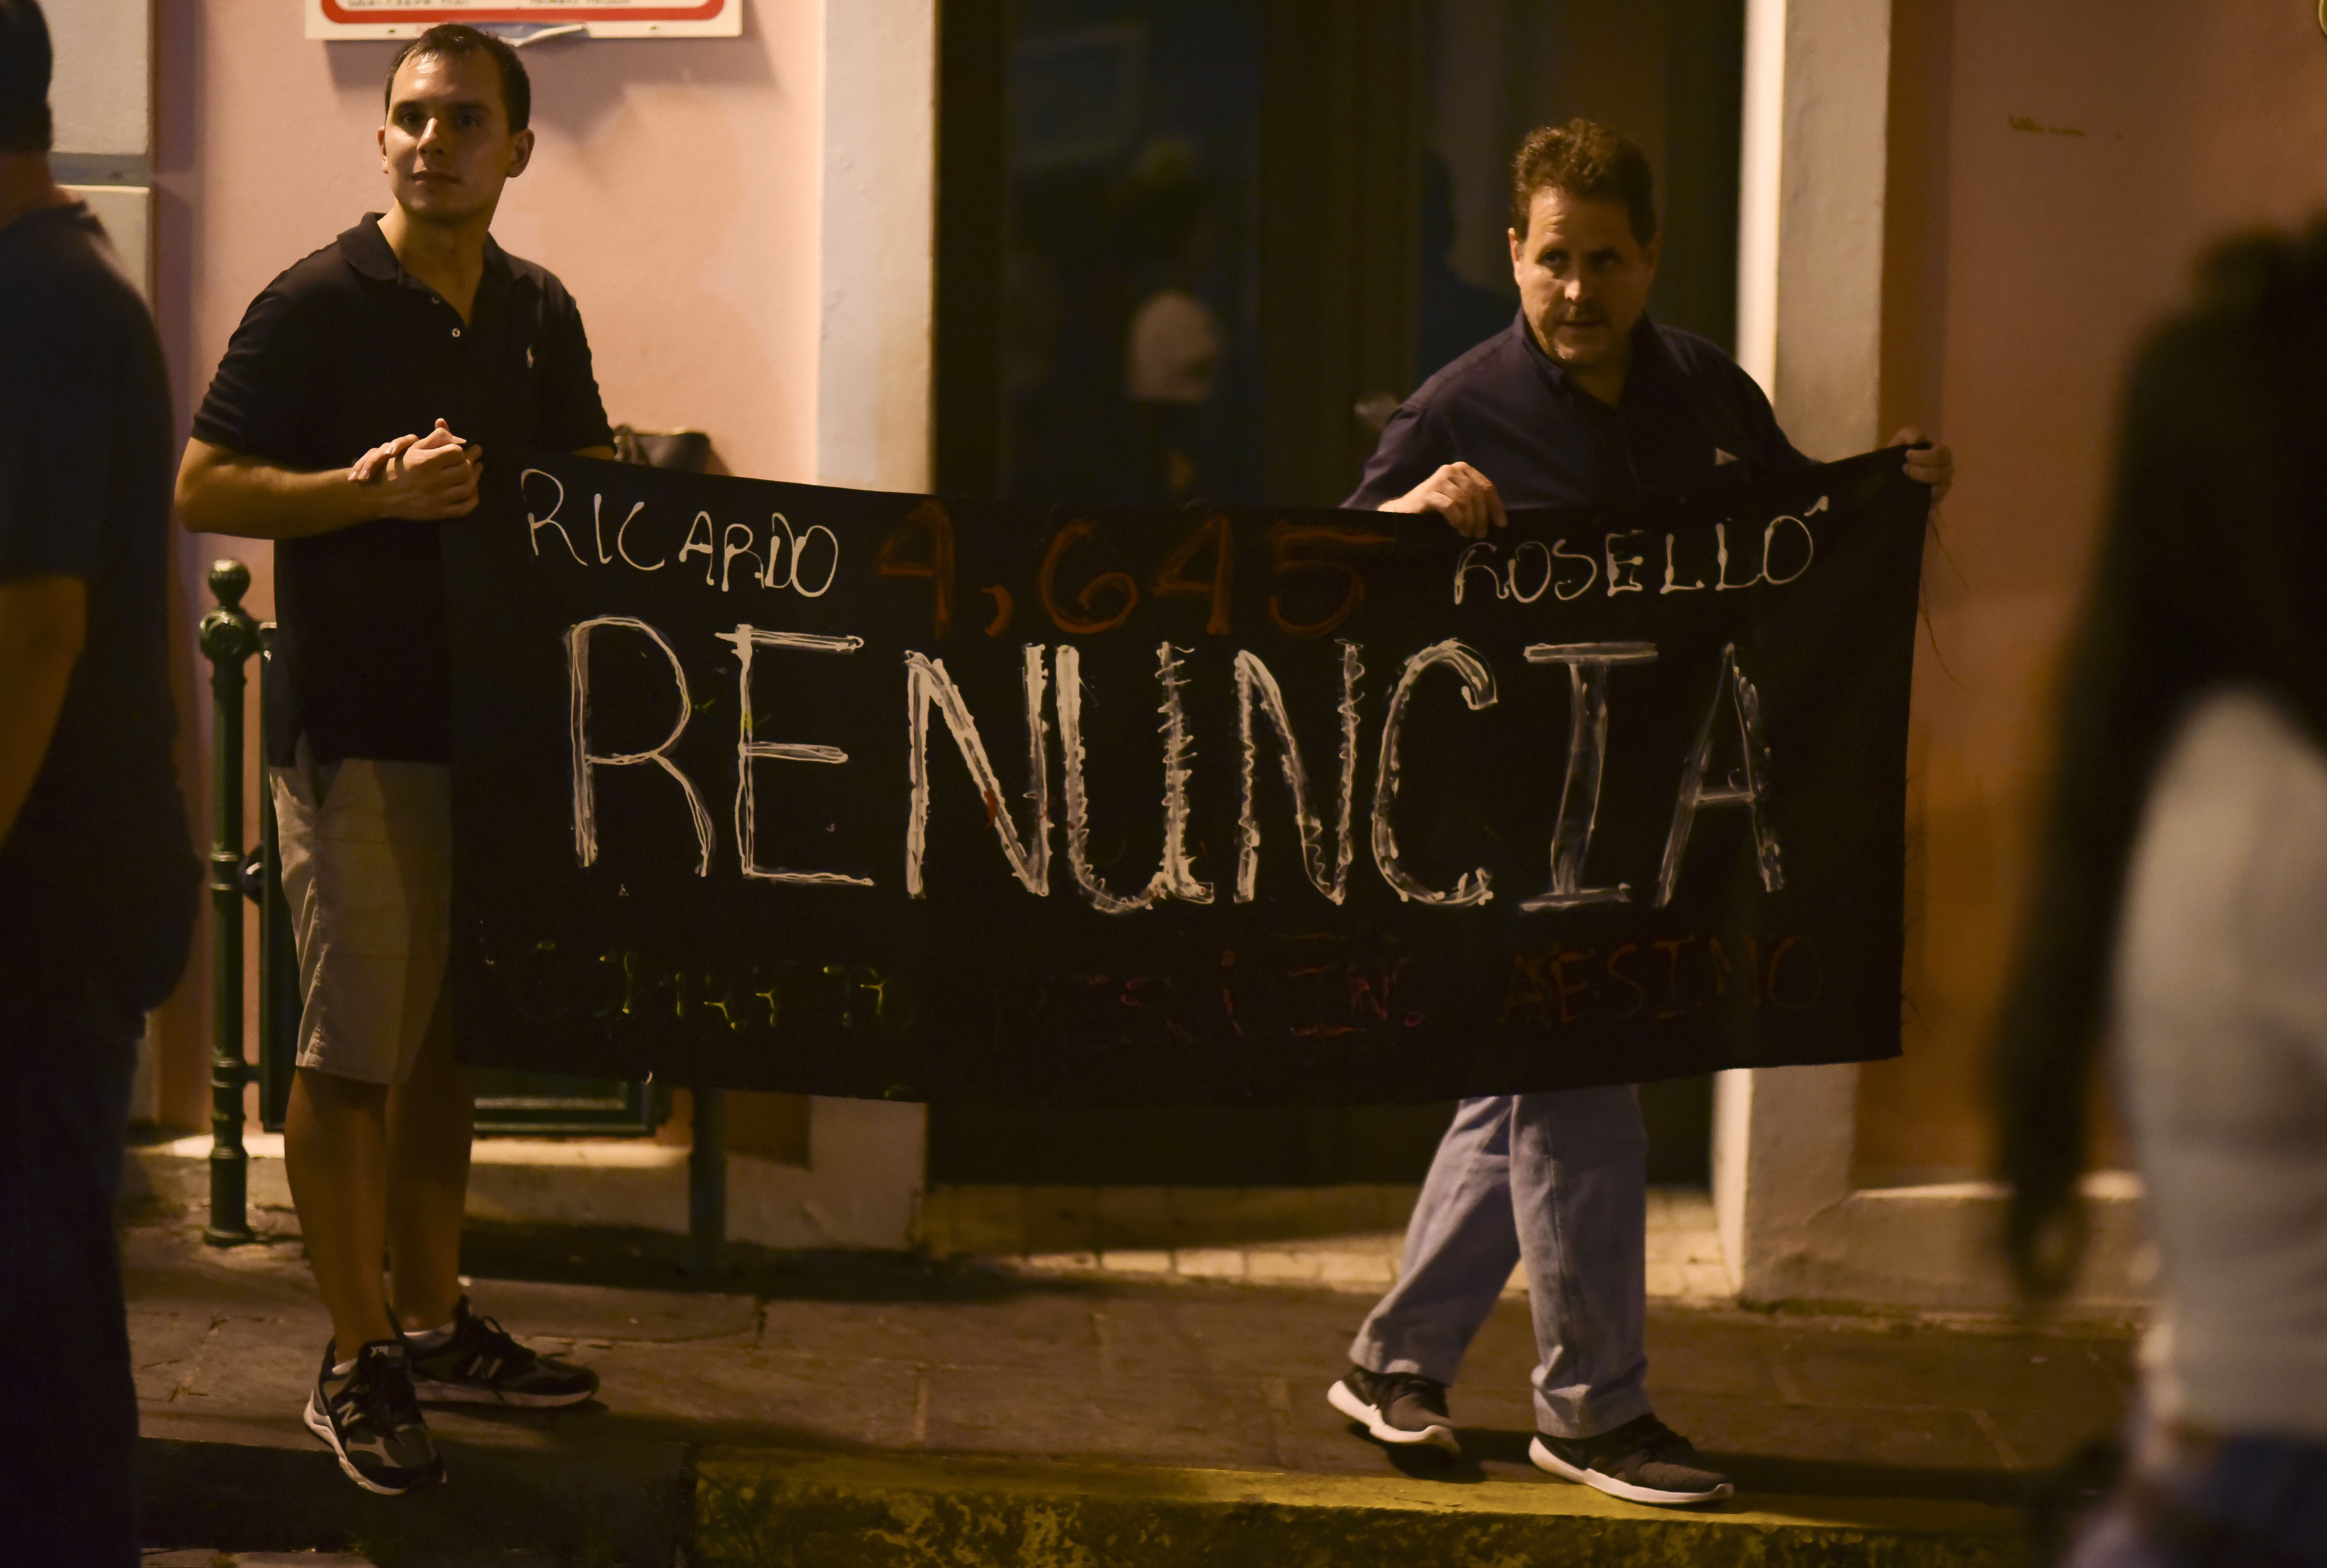 Citizens carrying a banner that reads in Spanish